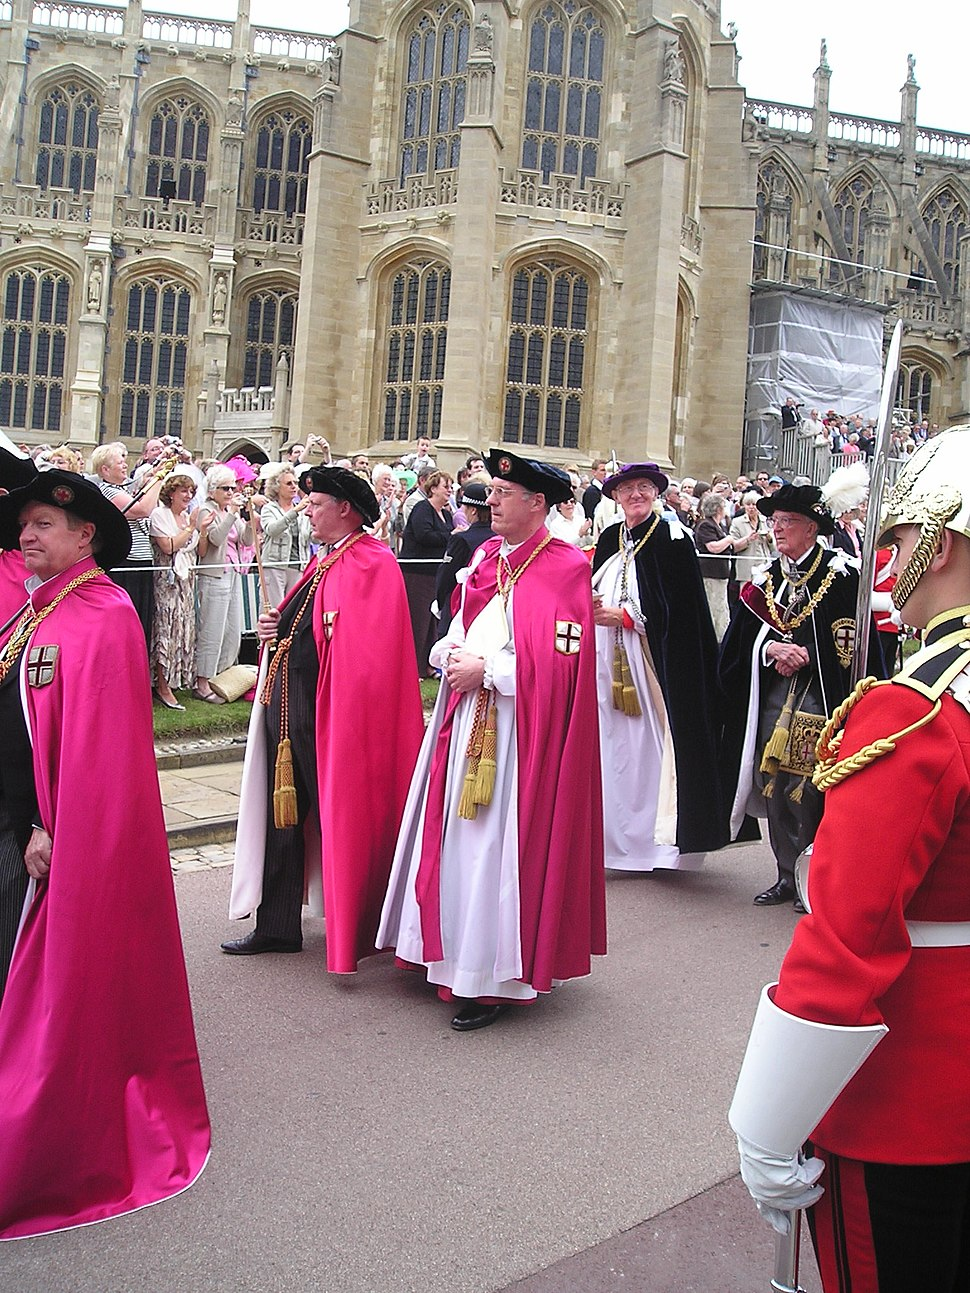 Officers of the Order of the Garter